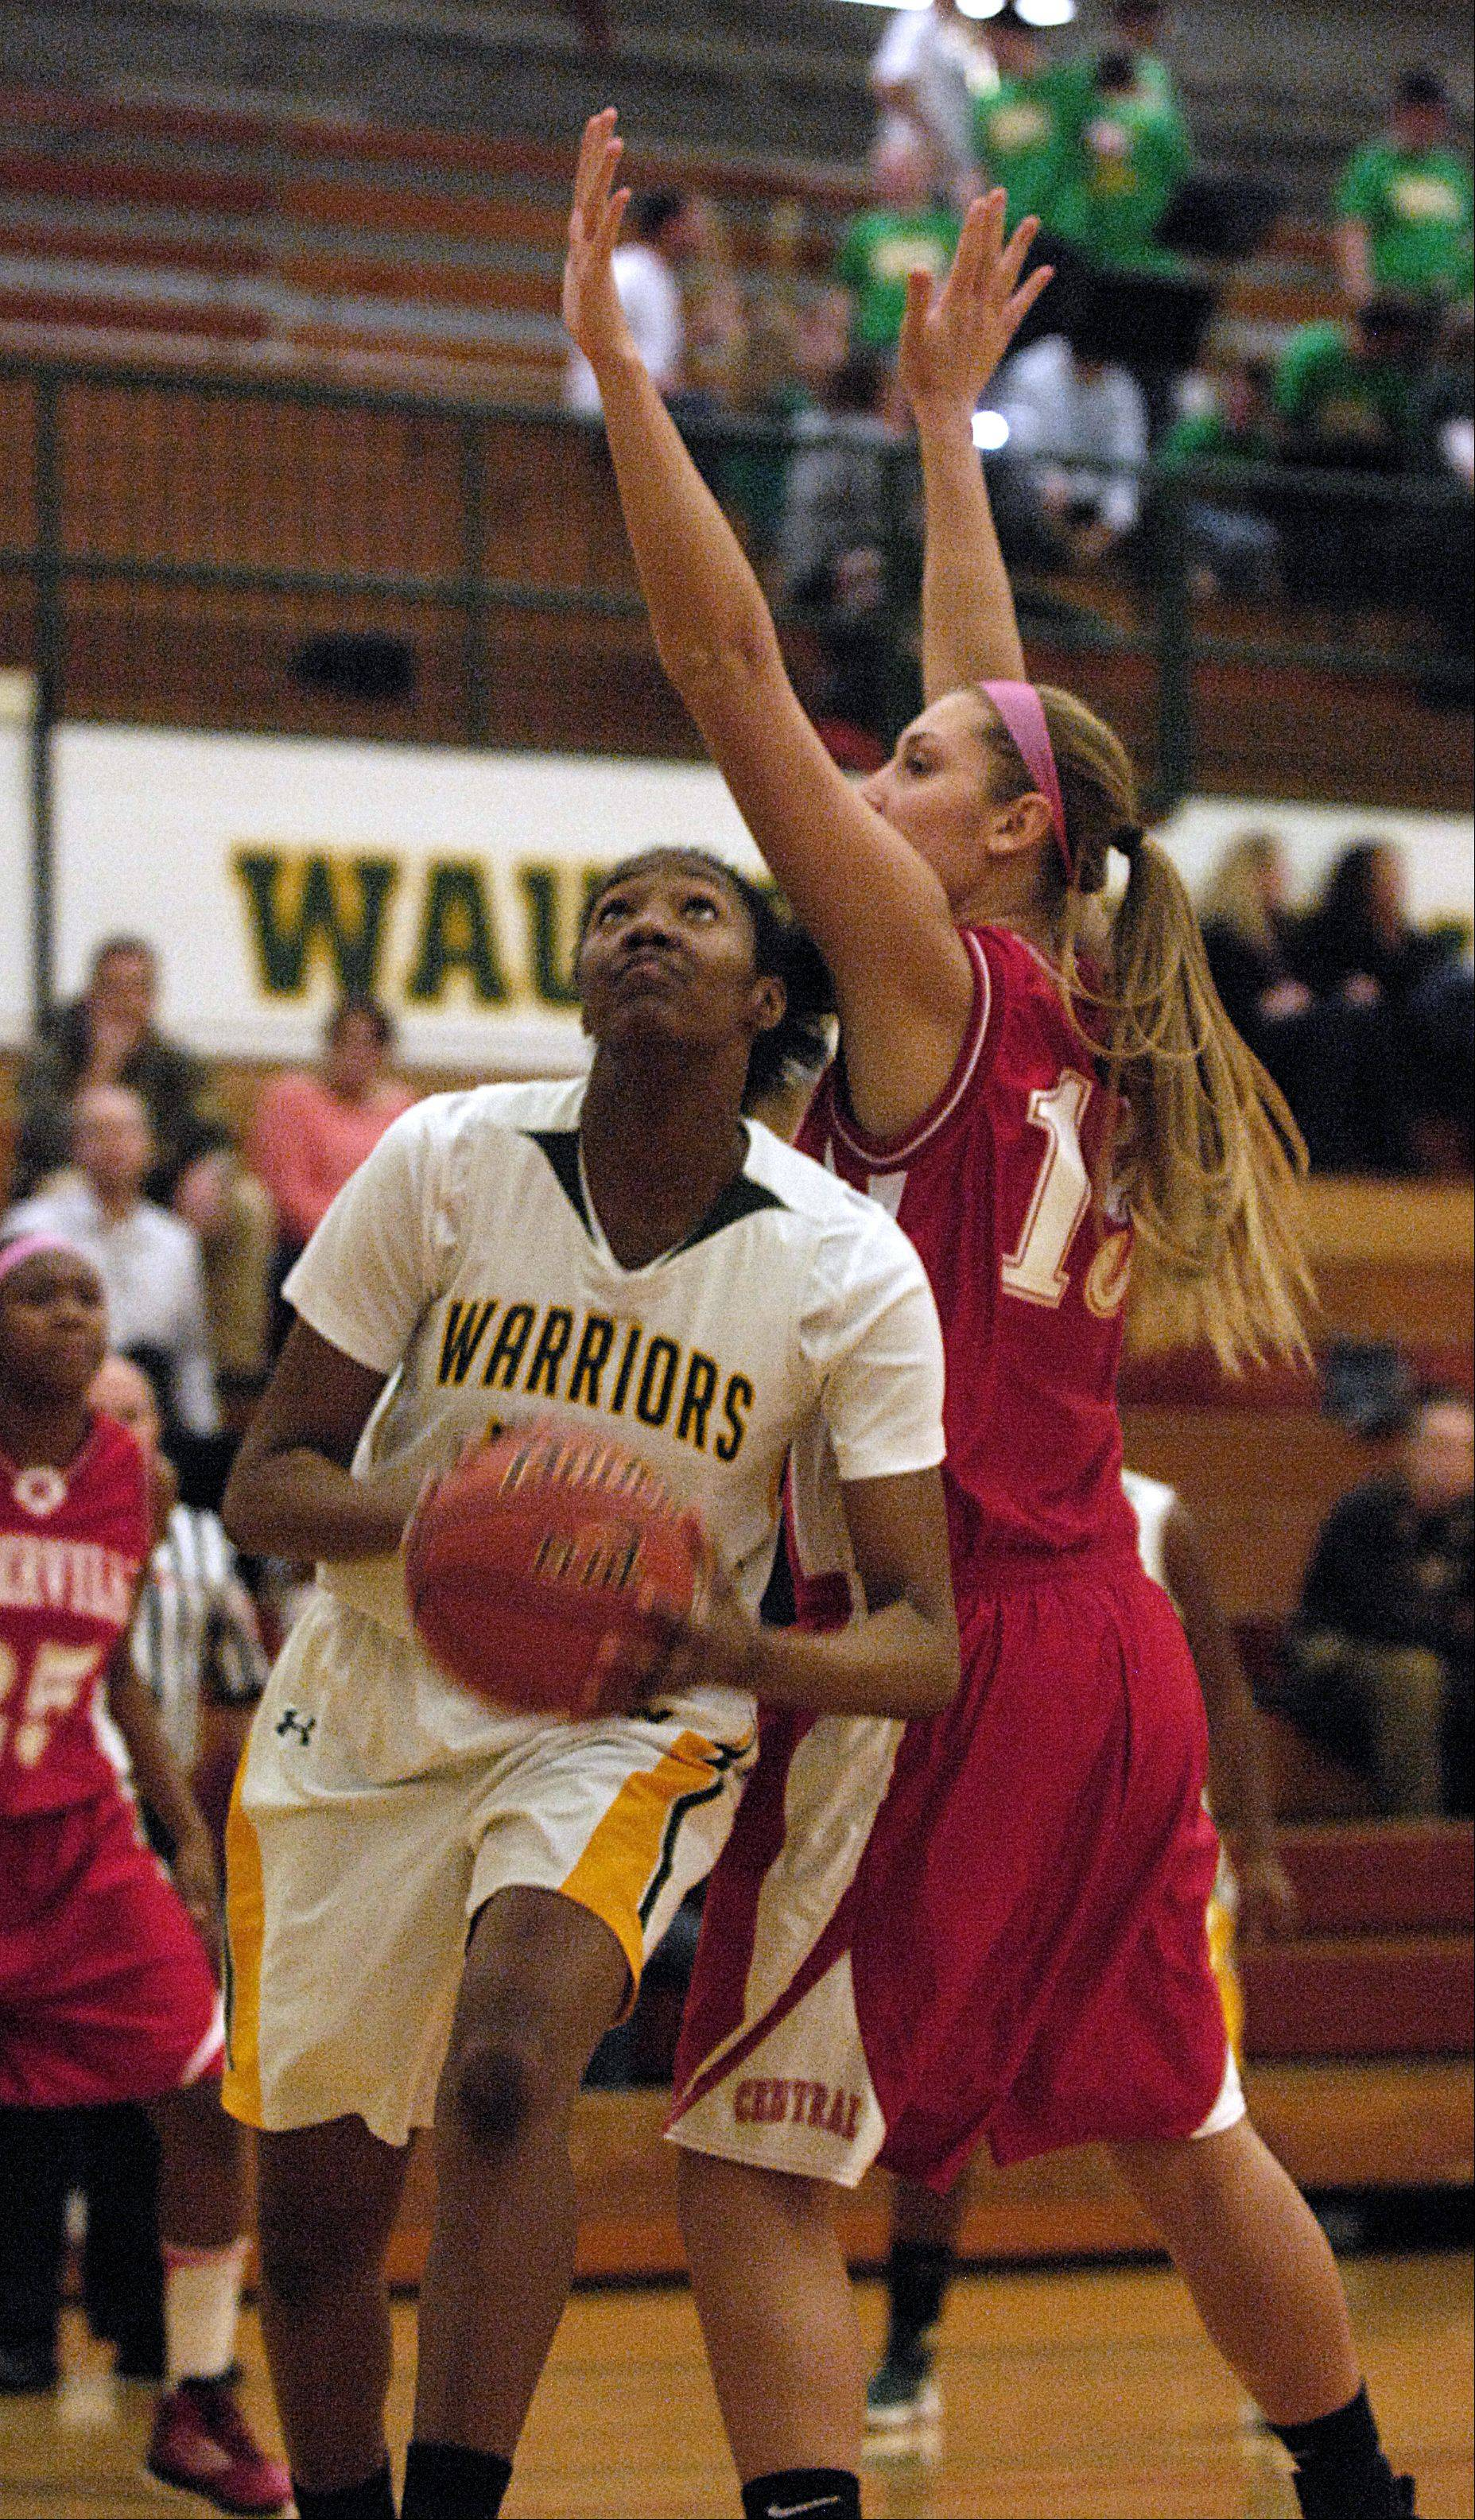 Ryaen Johnson of Waubonsie Valley goes up for a shot past Victoria Trowbridge of Naperville Central.